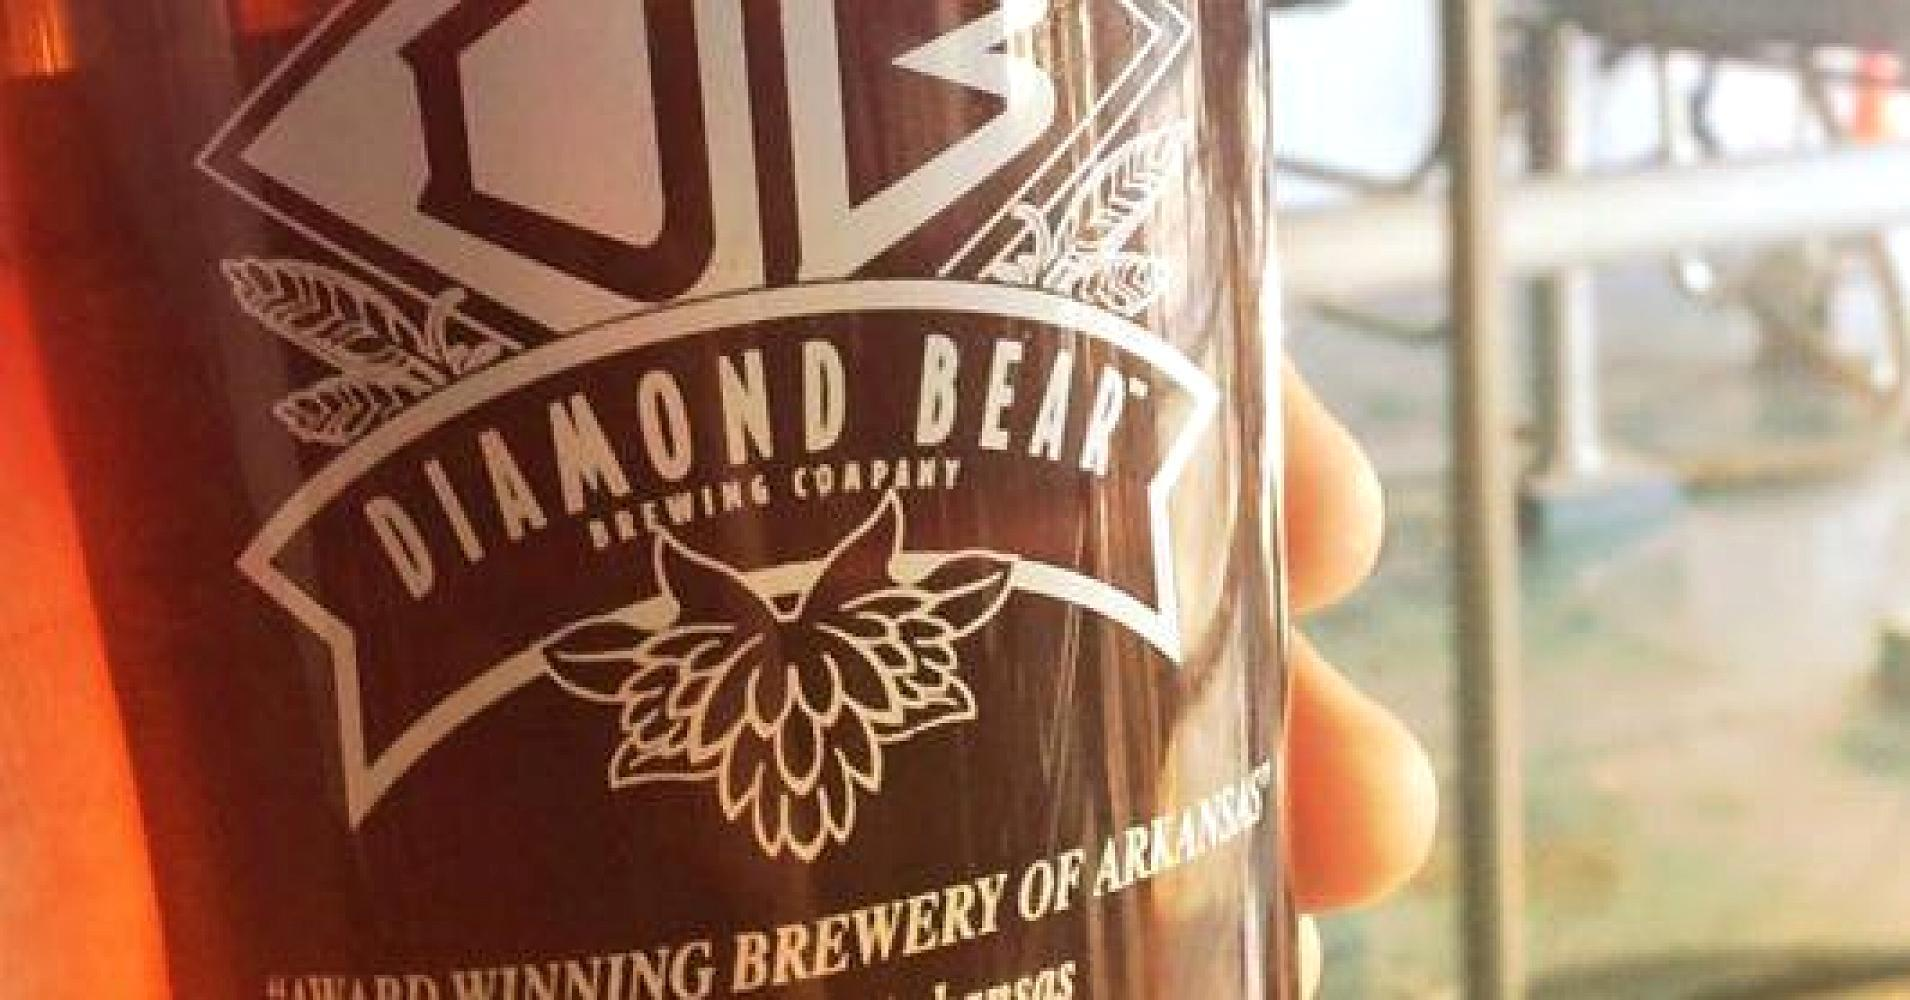 The South is brewing up craft beer competition